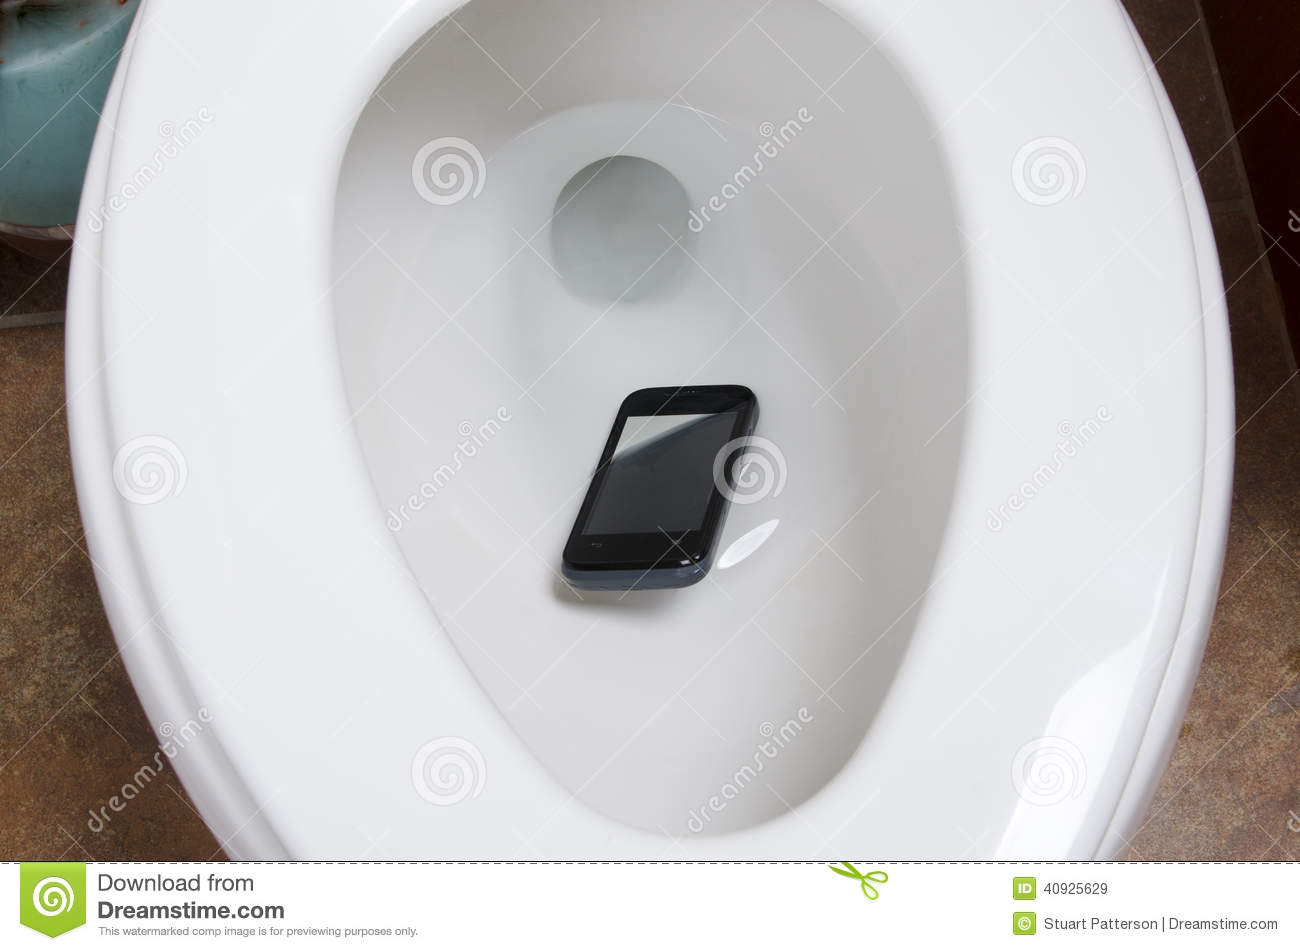 a cell phone in the toilet stock image image of toliet 40925629. Black Bedroom Furniture Sets. Home Design Ideas